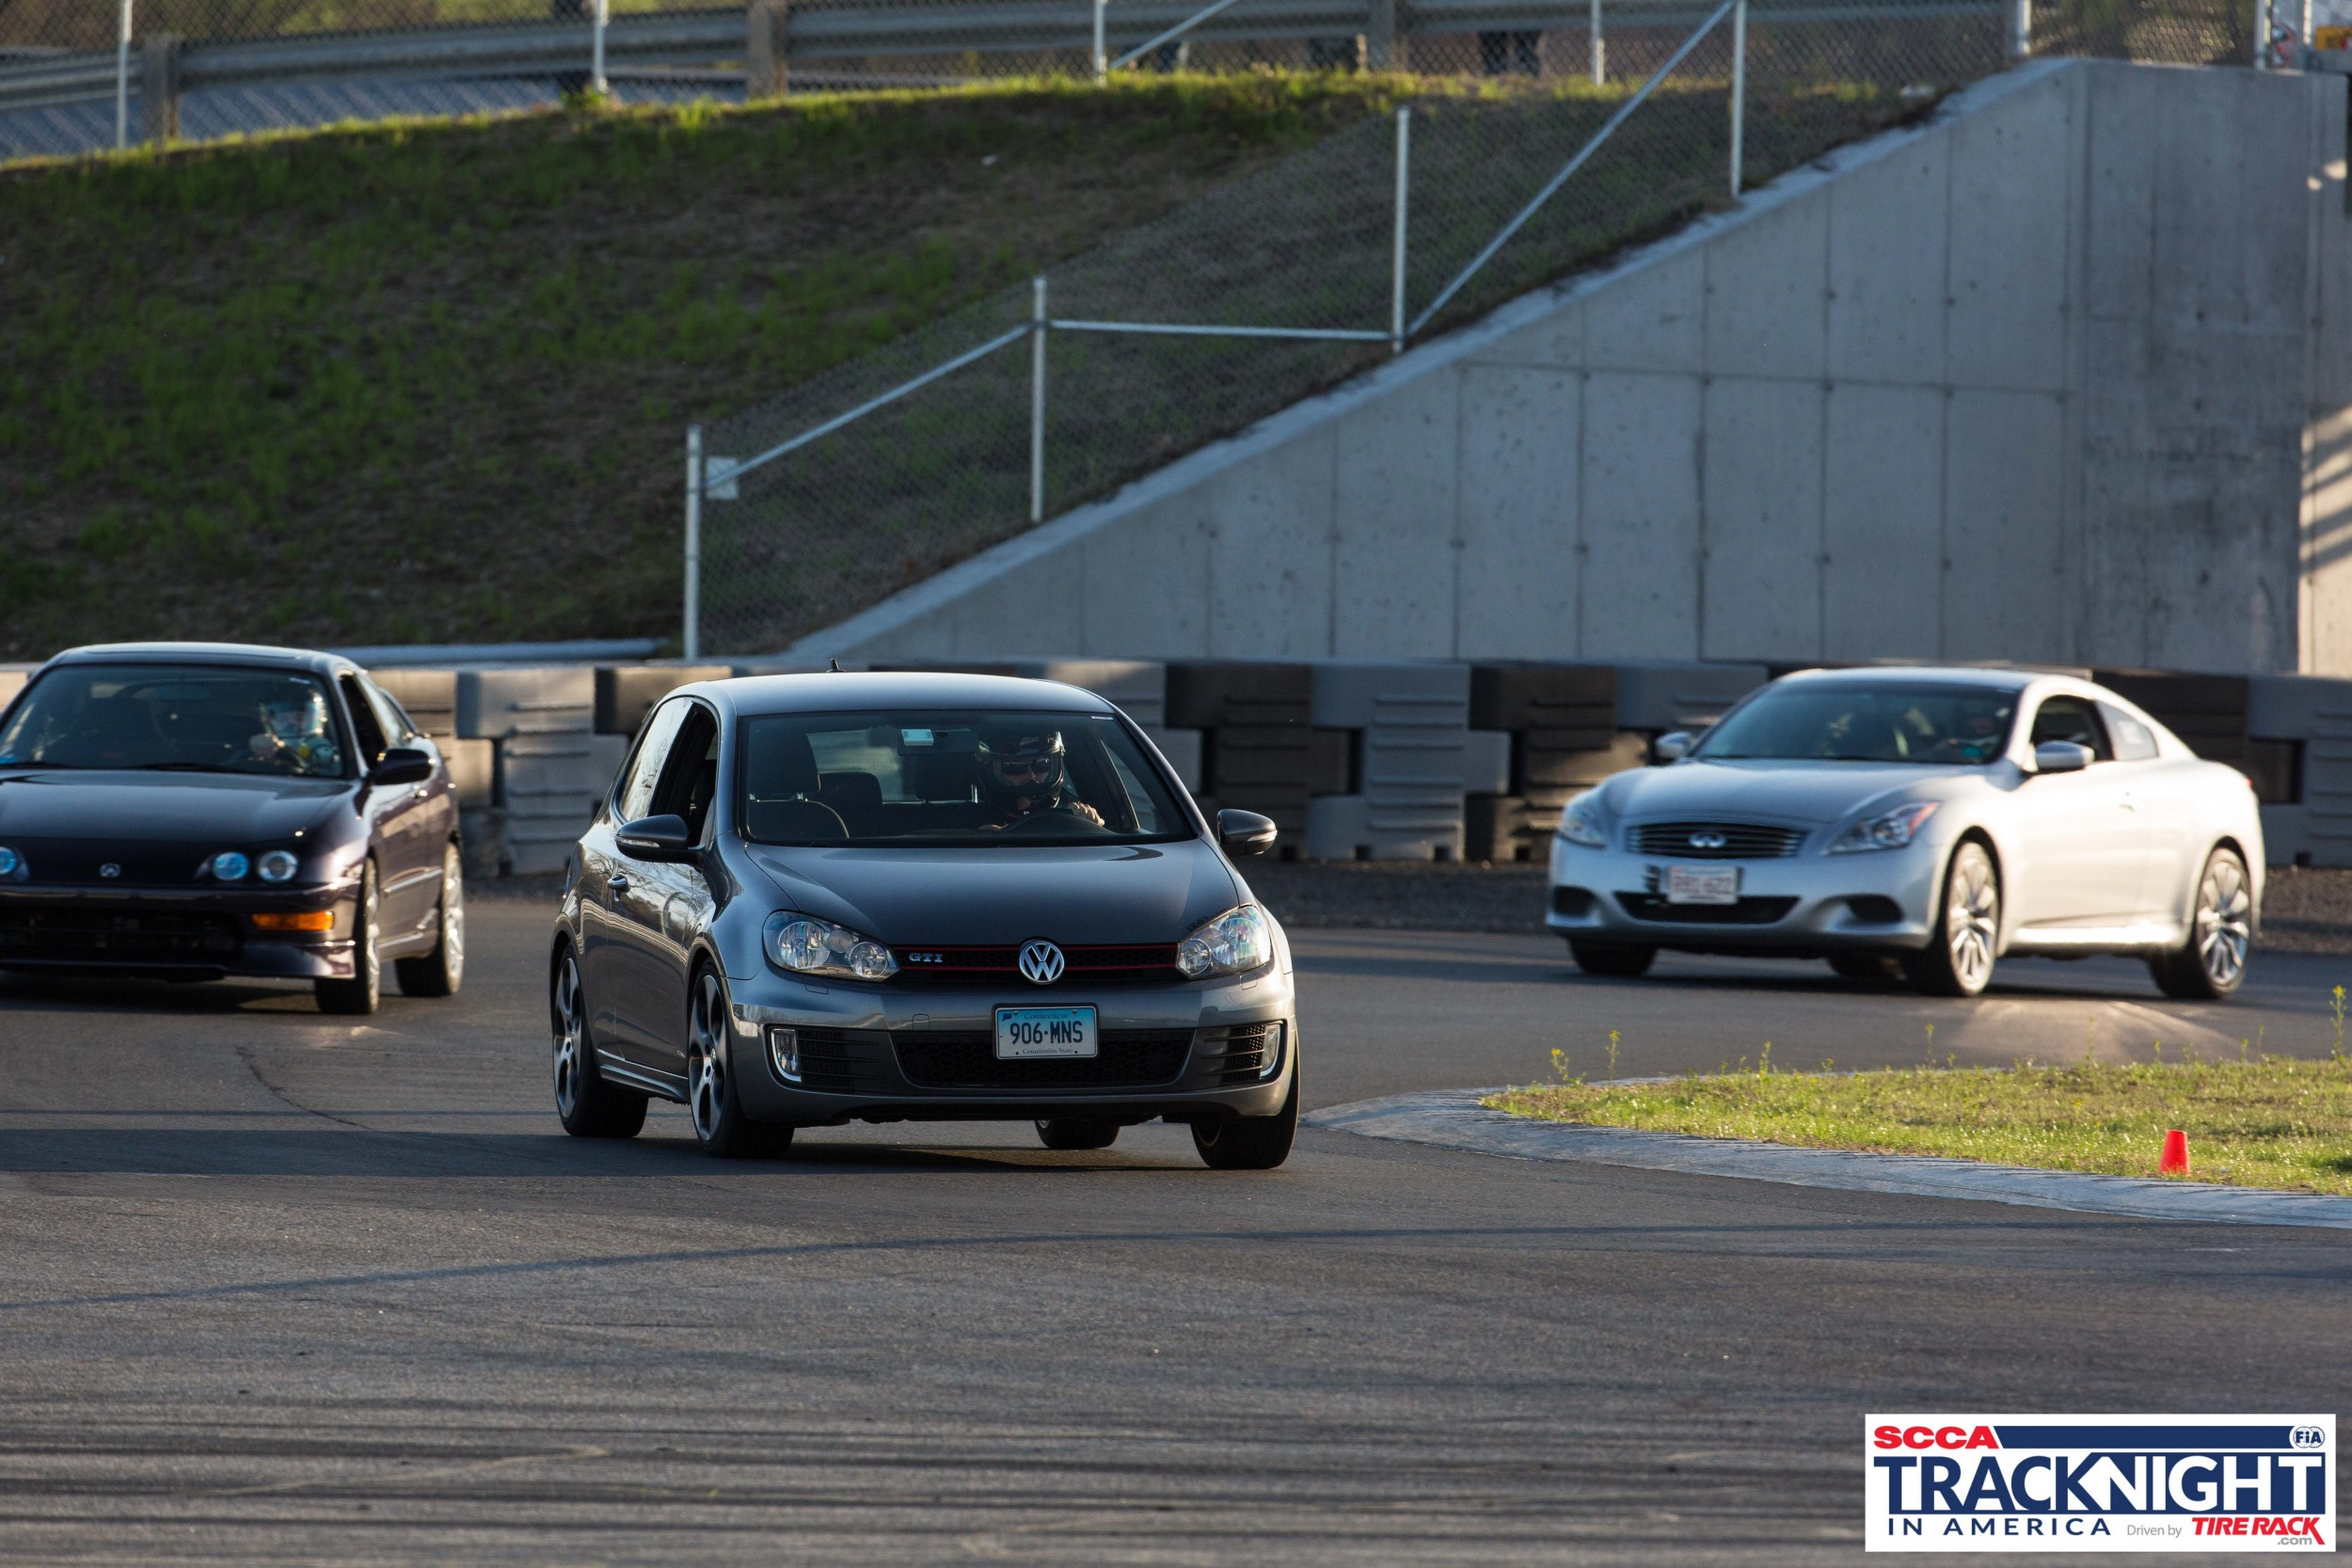 SCCA_Track_Night_In_America_TSMP_34828